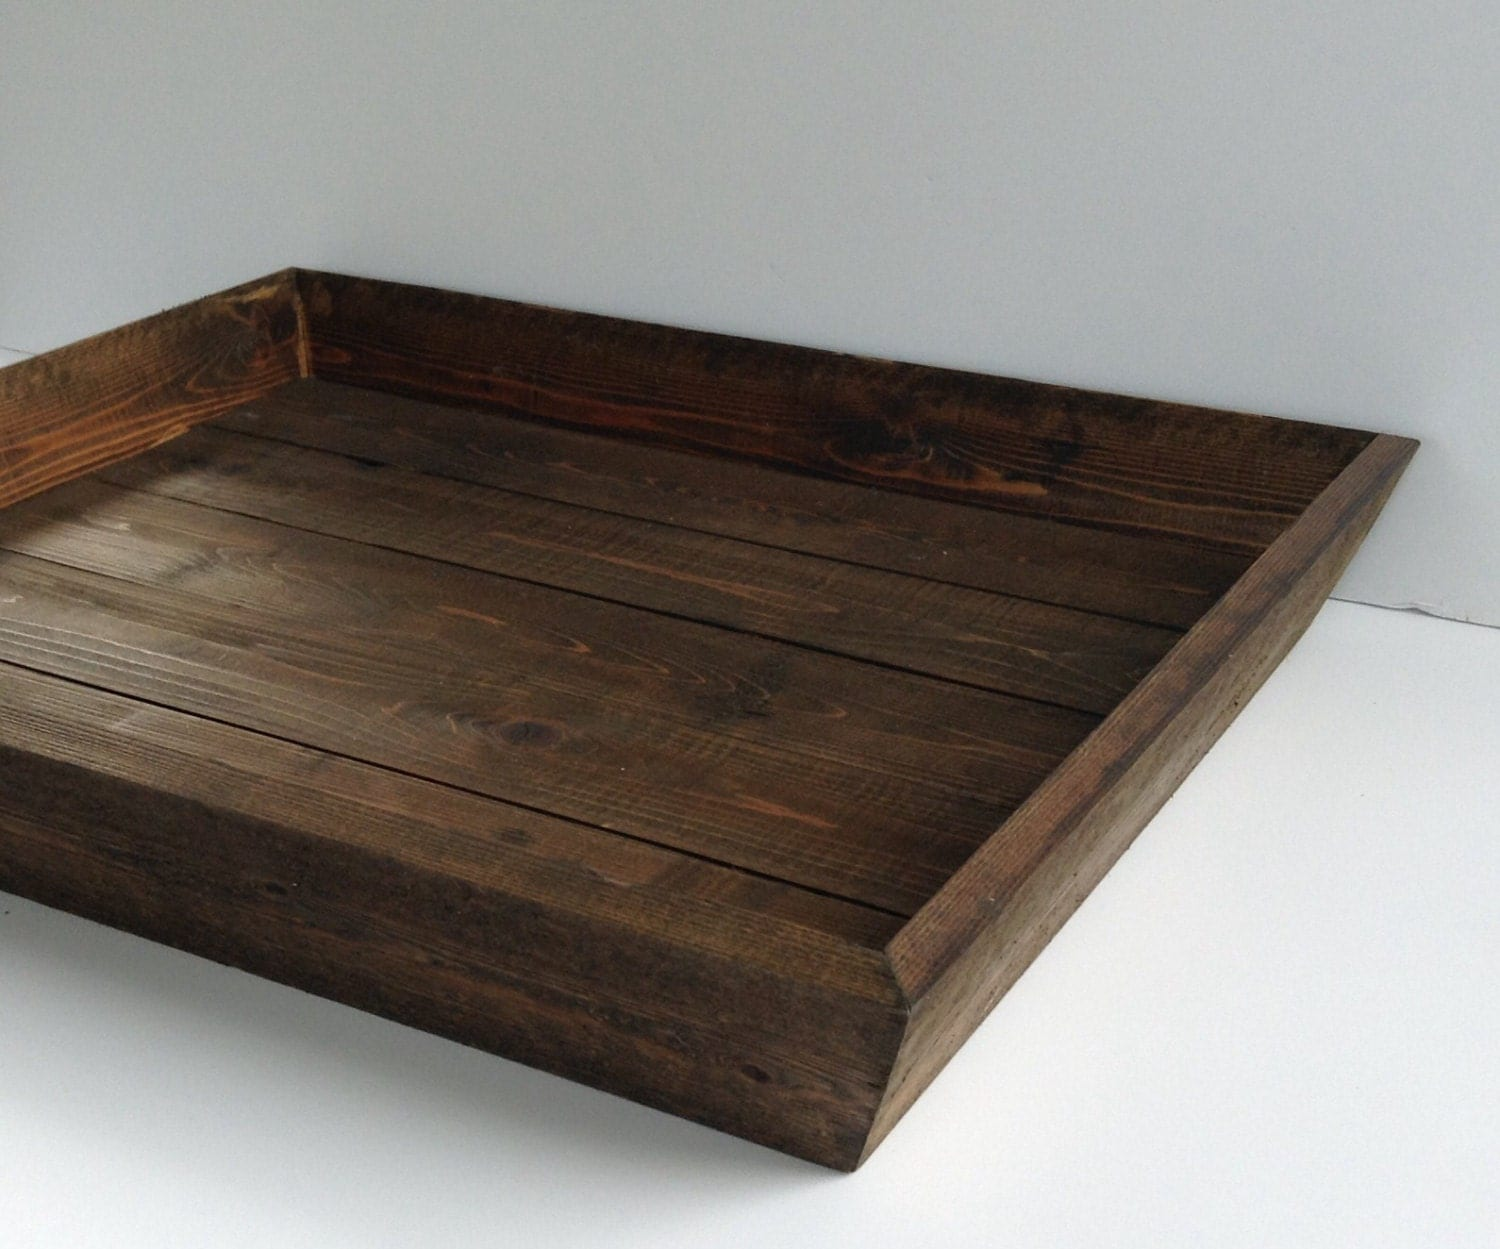 Dark Stained Wood Tray Rustic Box Ottoman Wooden